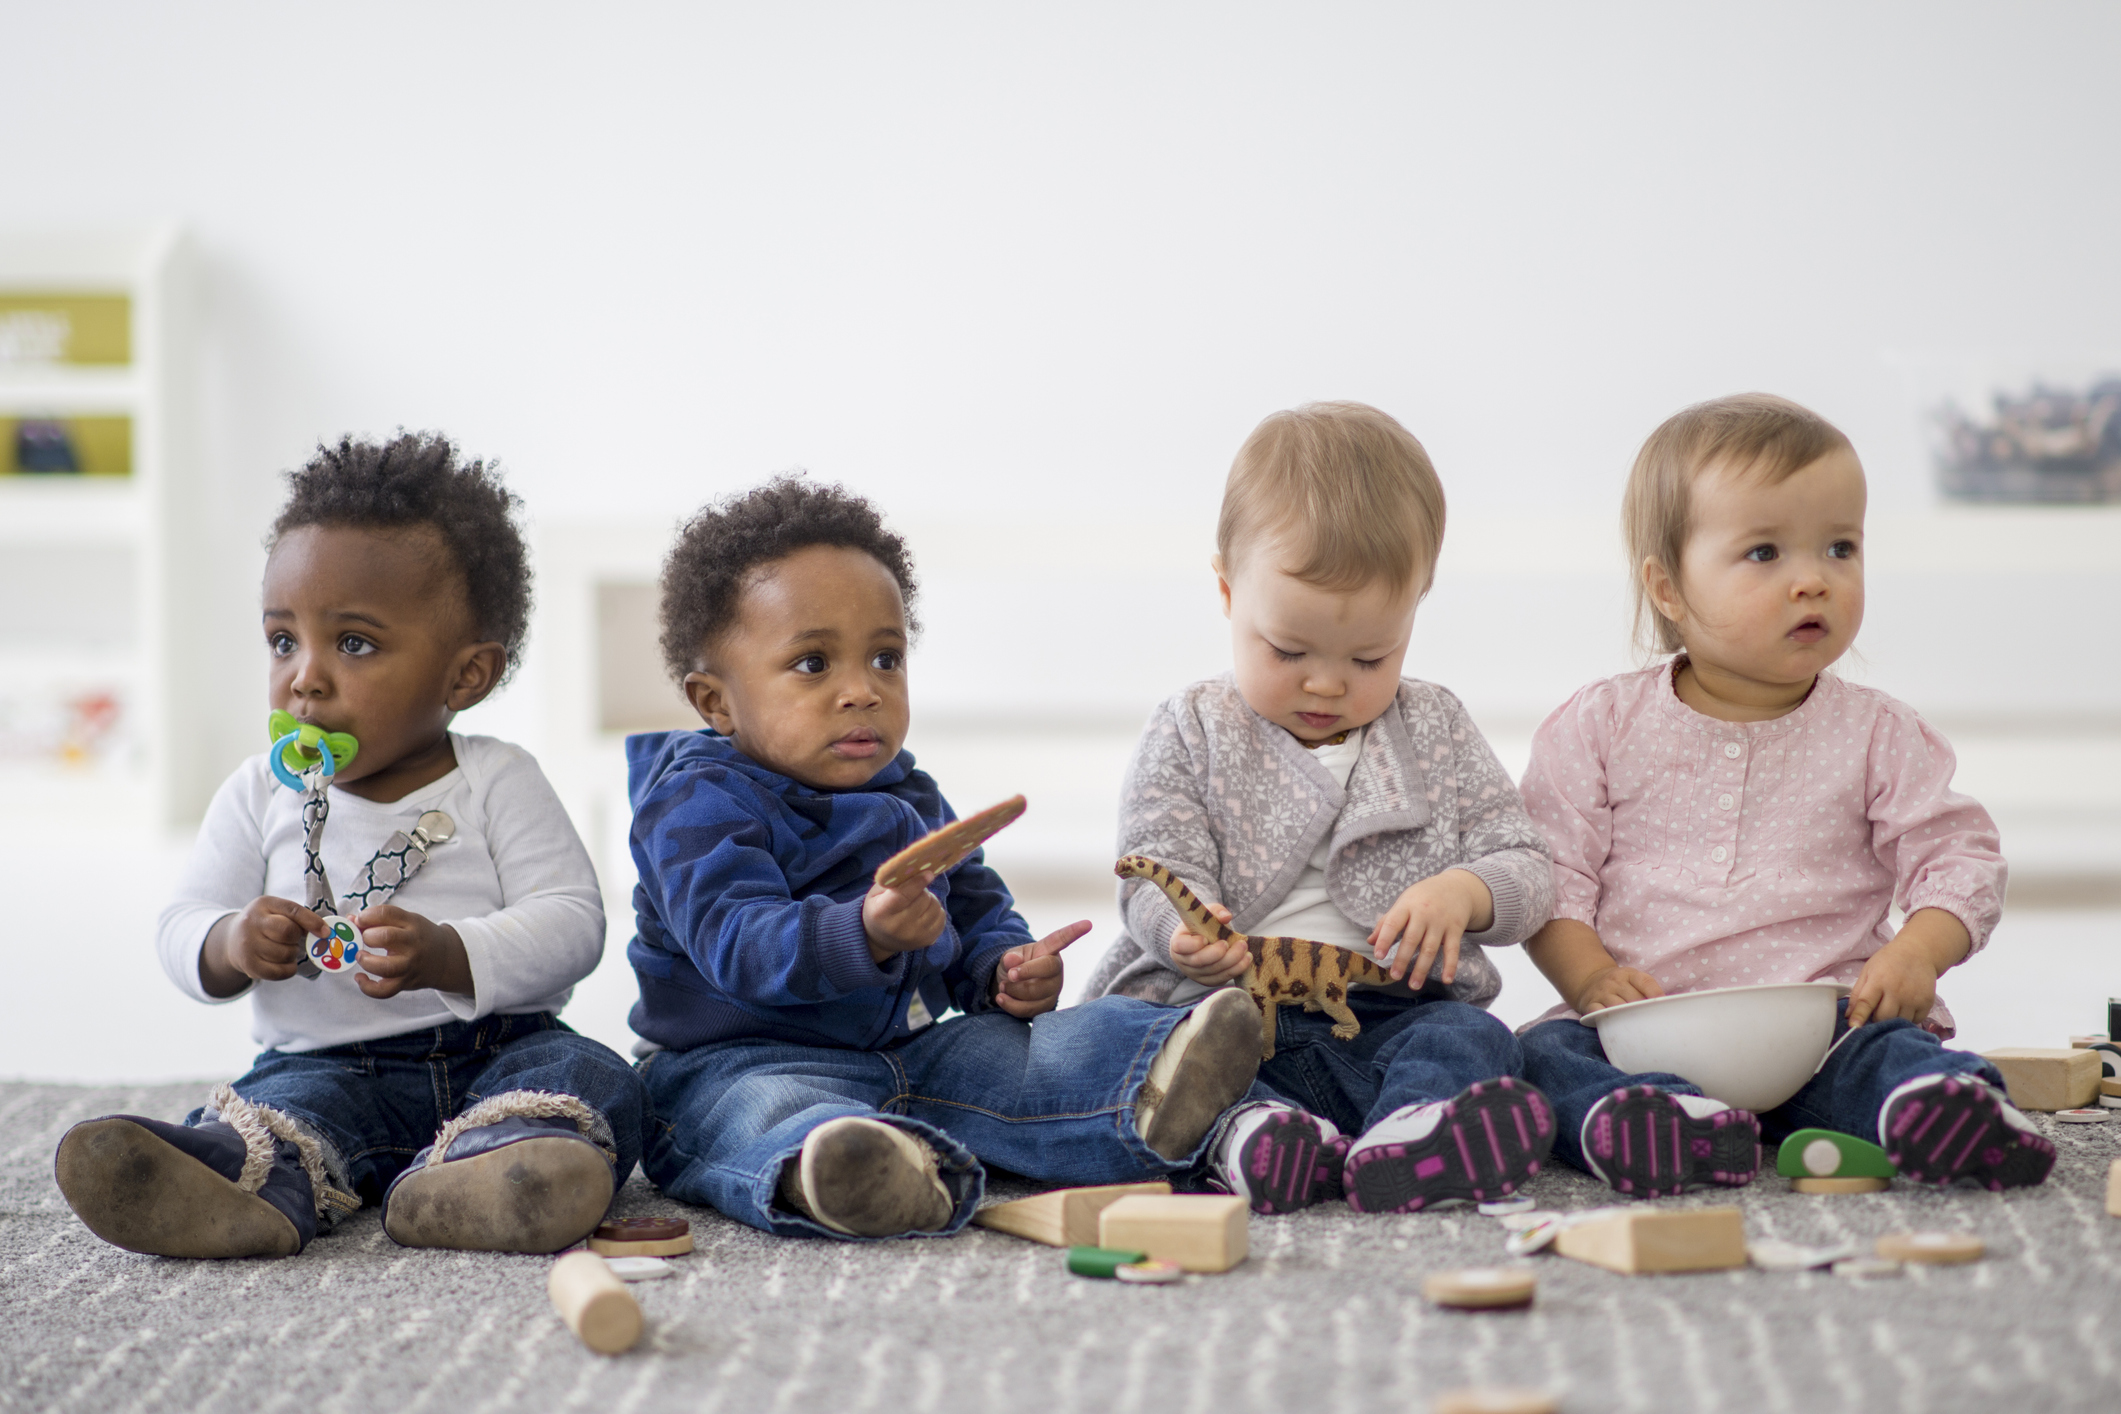 A multi-ethnic group of toddlers are sitting on the floor and are playing together with toys while on a play date.